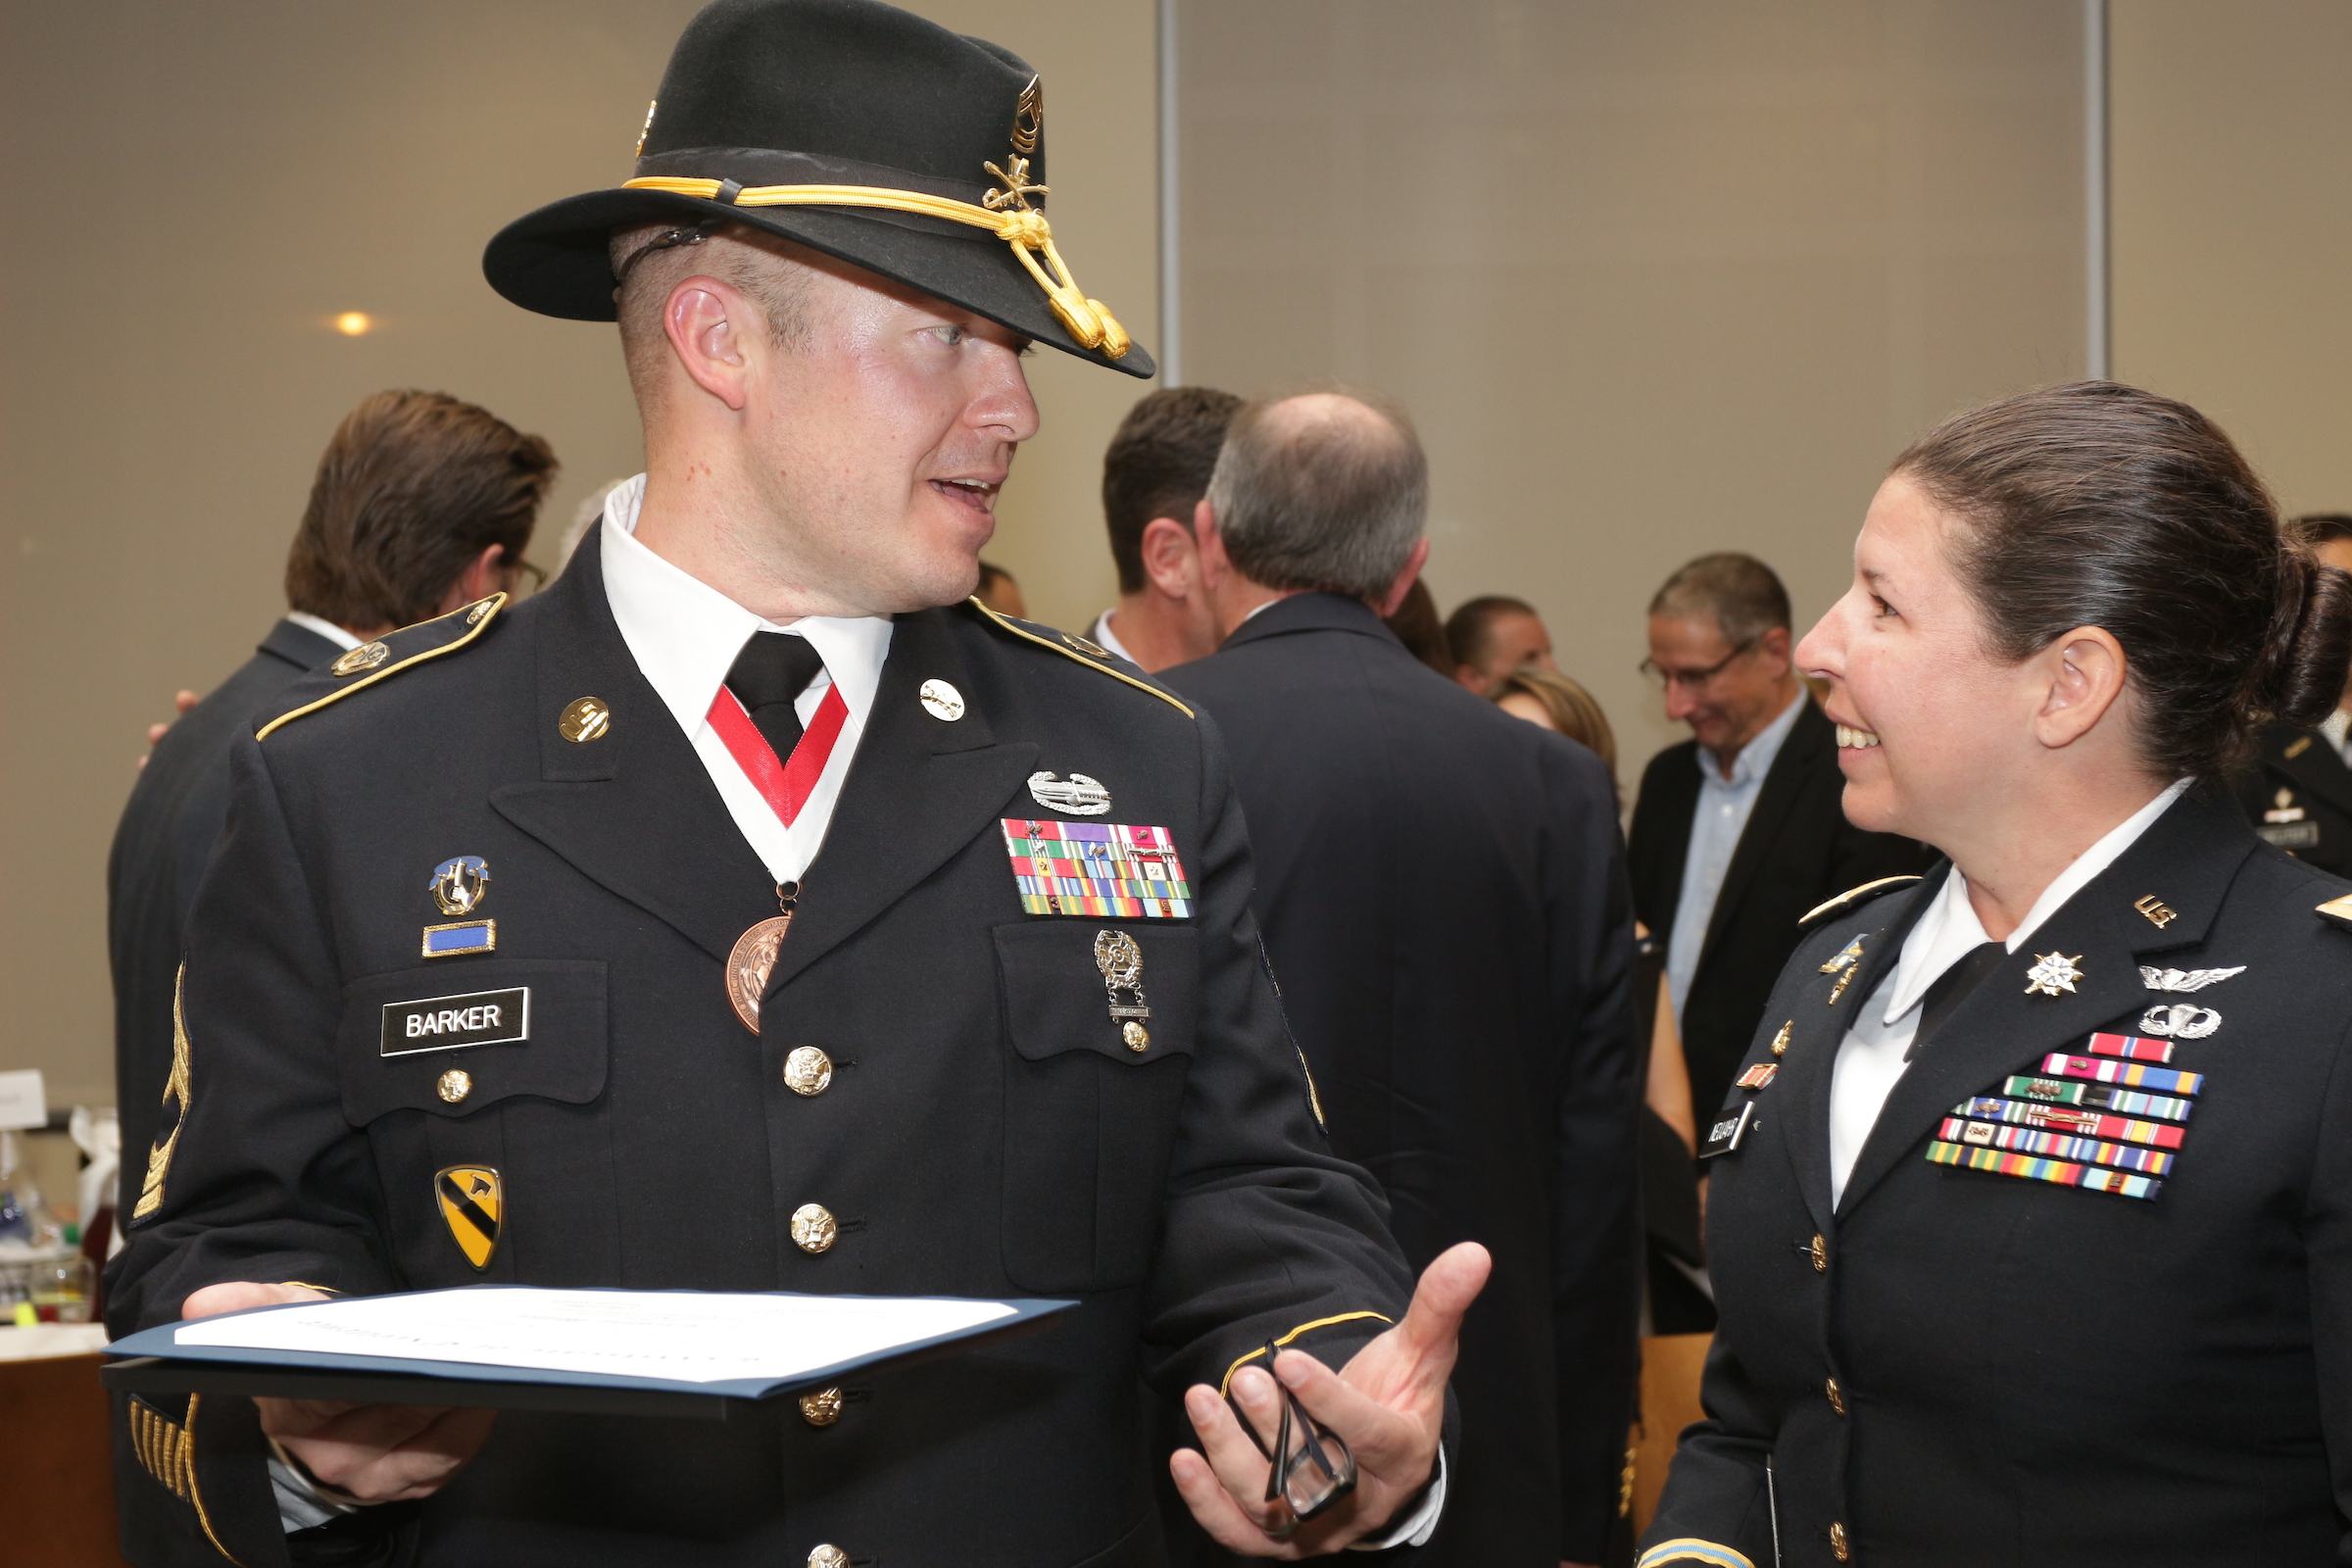 North Georgia Corps of Cadets Association (ngcCa) - The North Georgia Corps of Cadets Association (NGCCA) promotes the traditions, ideals and interests of the UNG Corps of Cadets and the contributions of Corps of Cadets alumni.